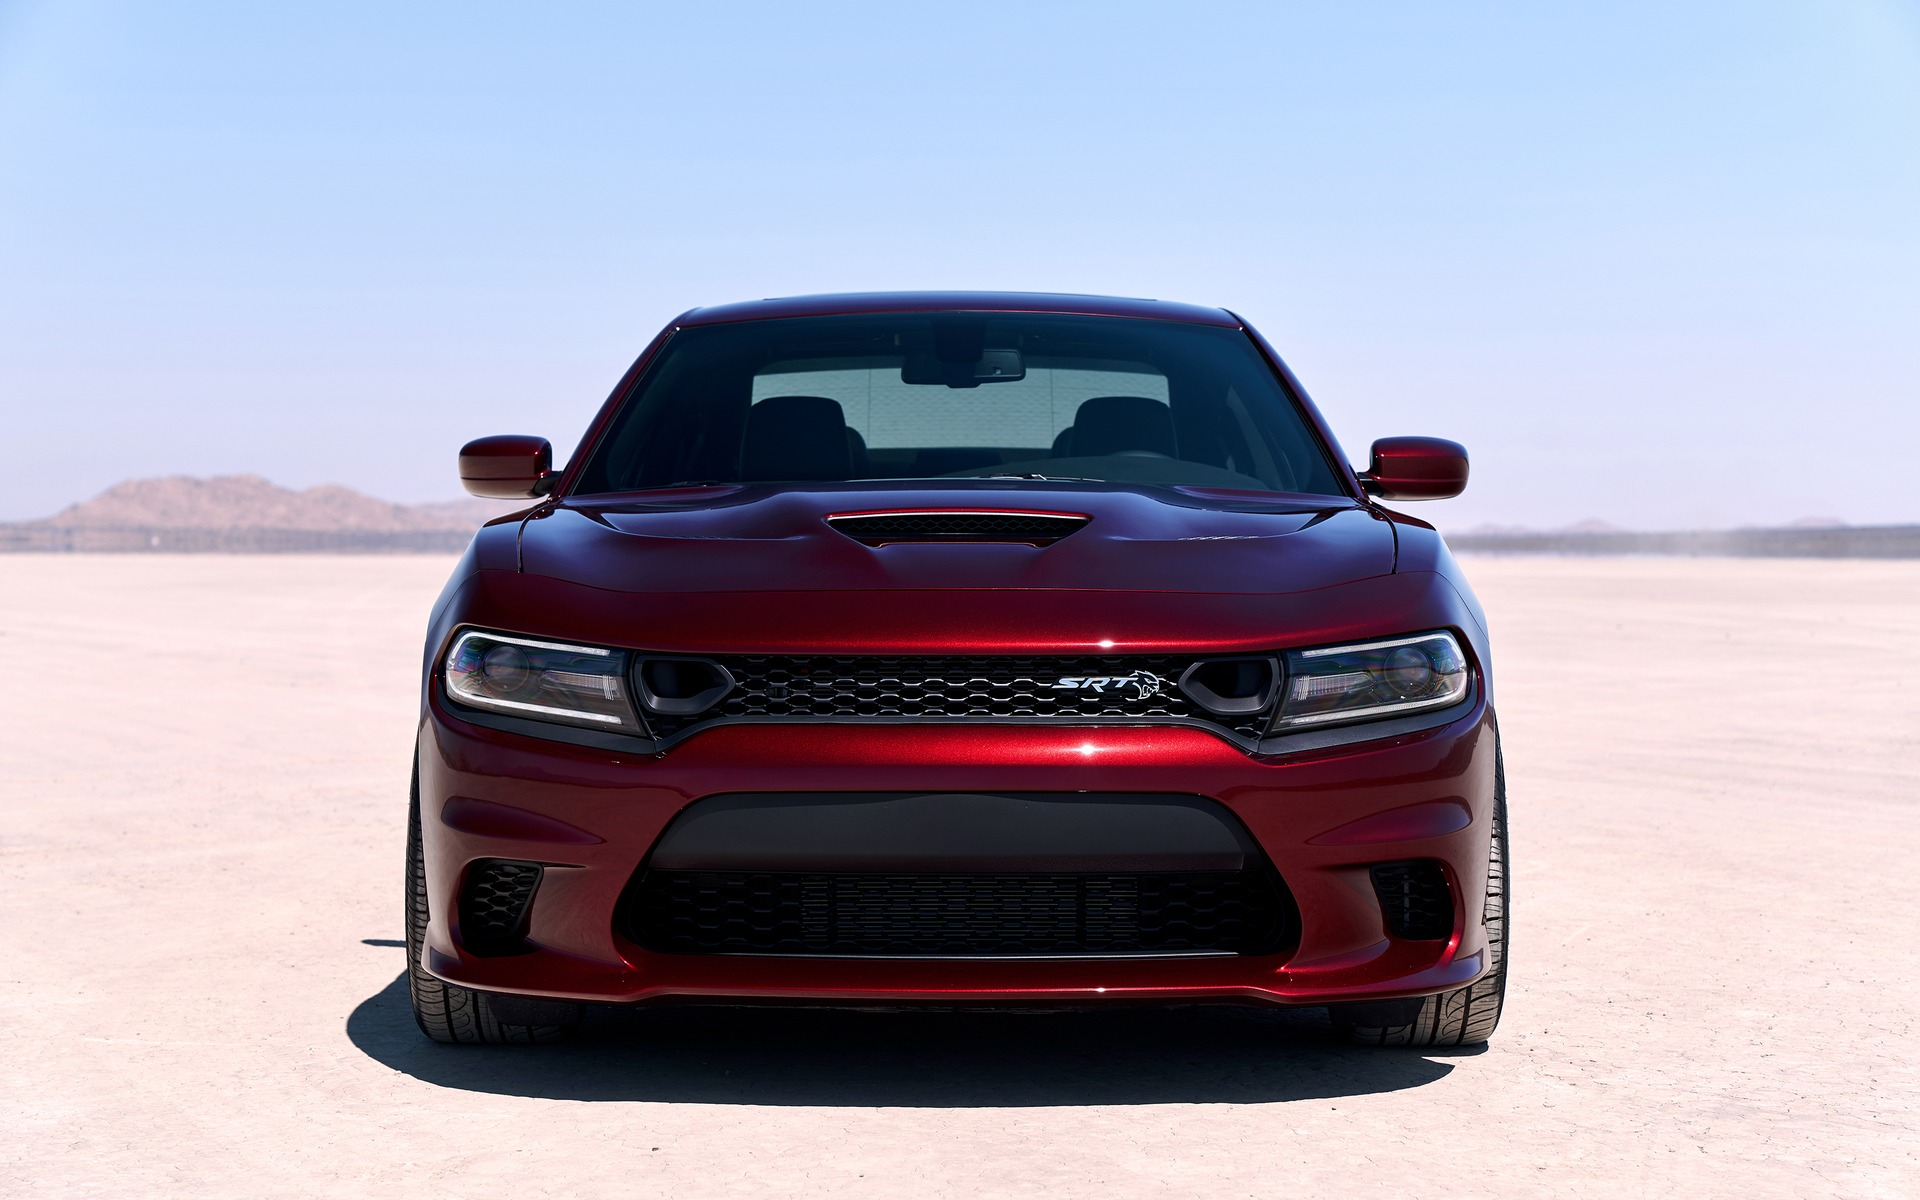 2019 Dodge Charger SRT Hellcat with new performance grille